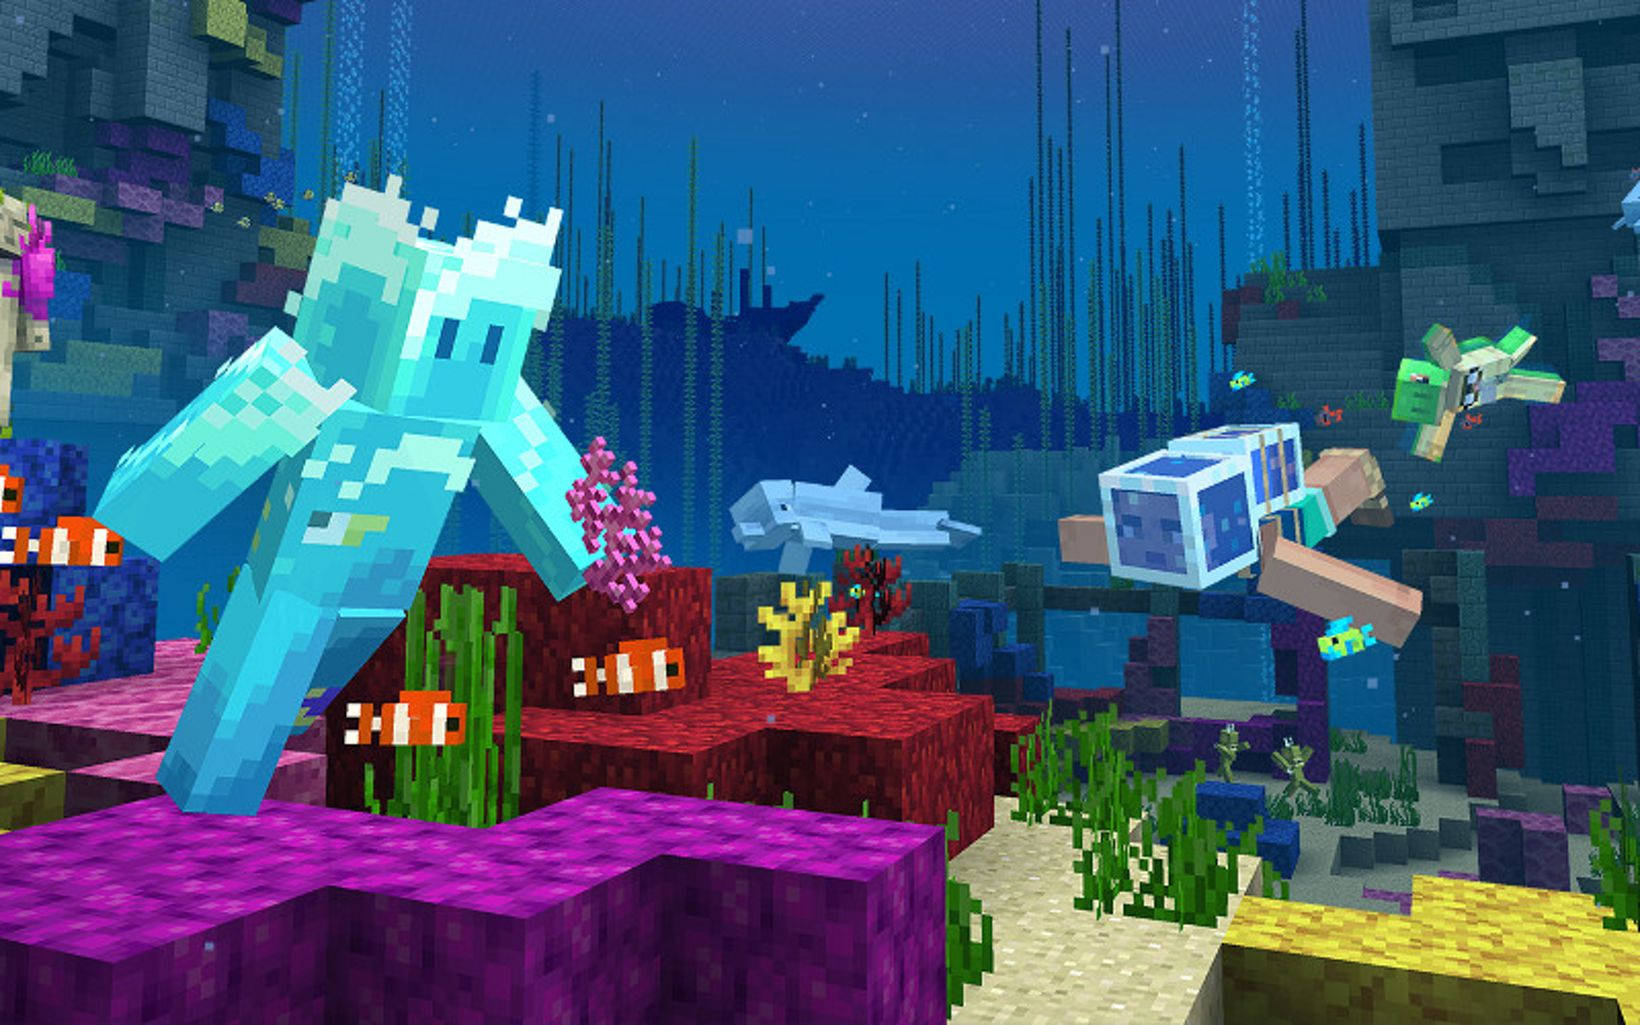 Microsoft Minecraft's Coral Crafter Skin Pack proceeds go to The Nature Conservancy.